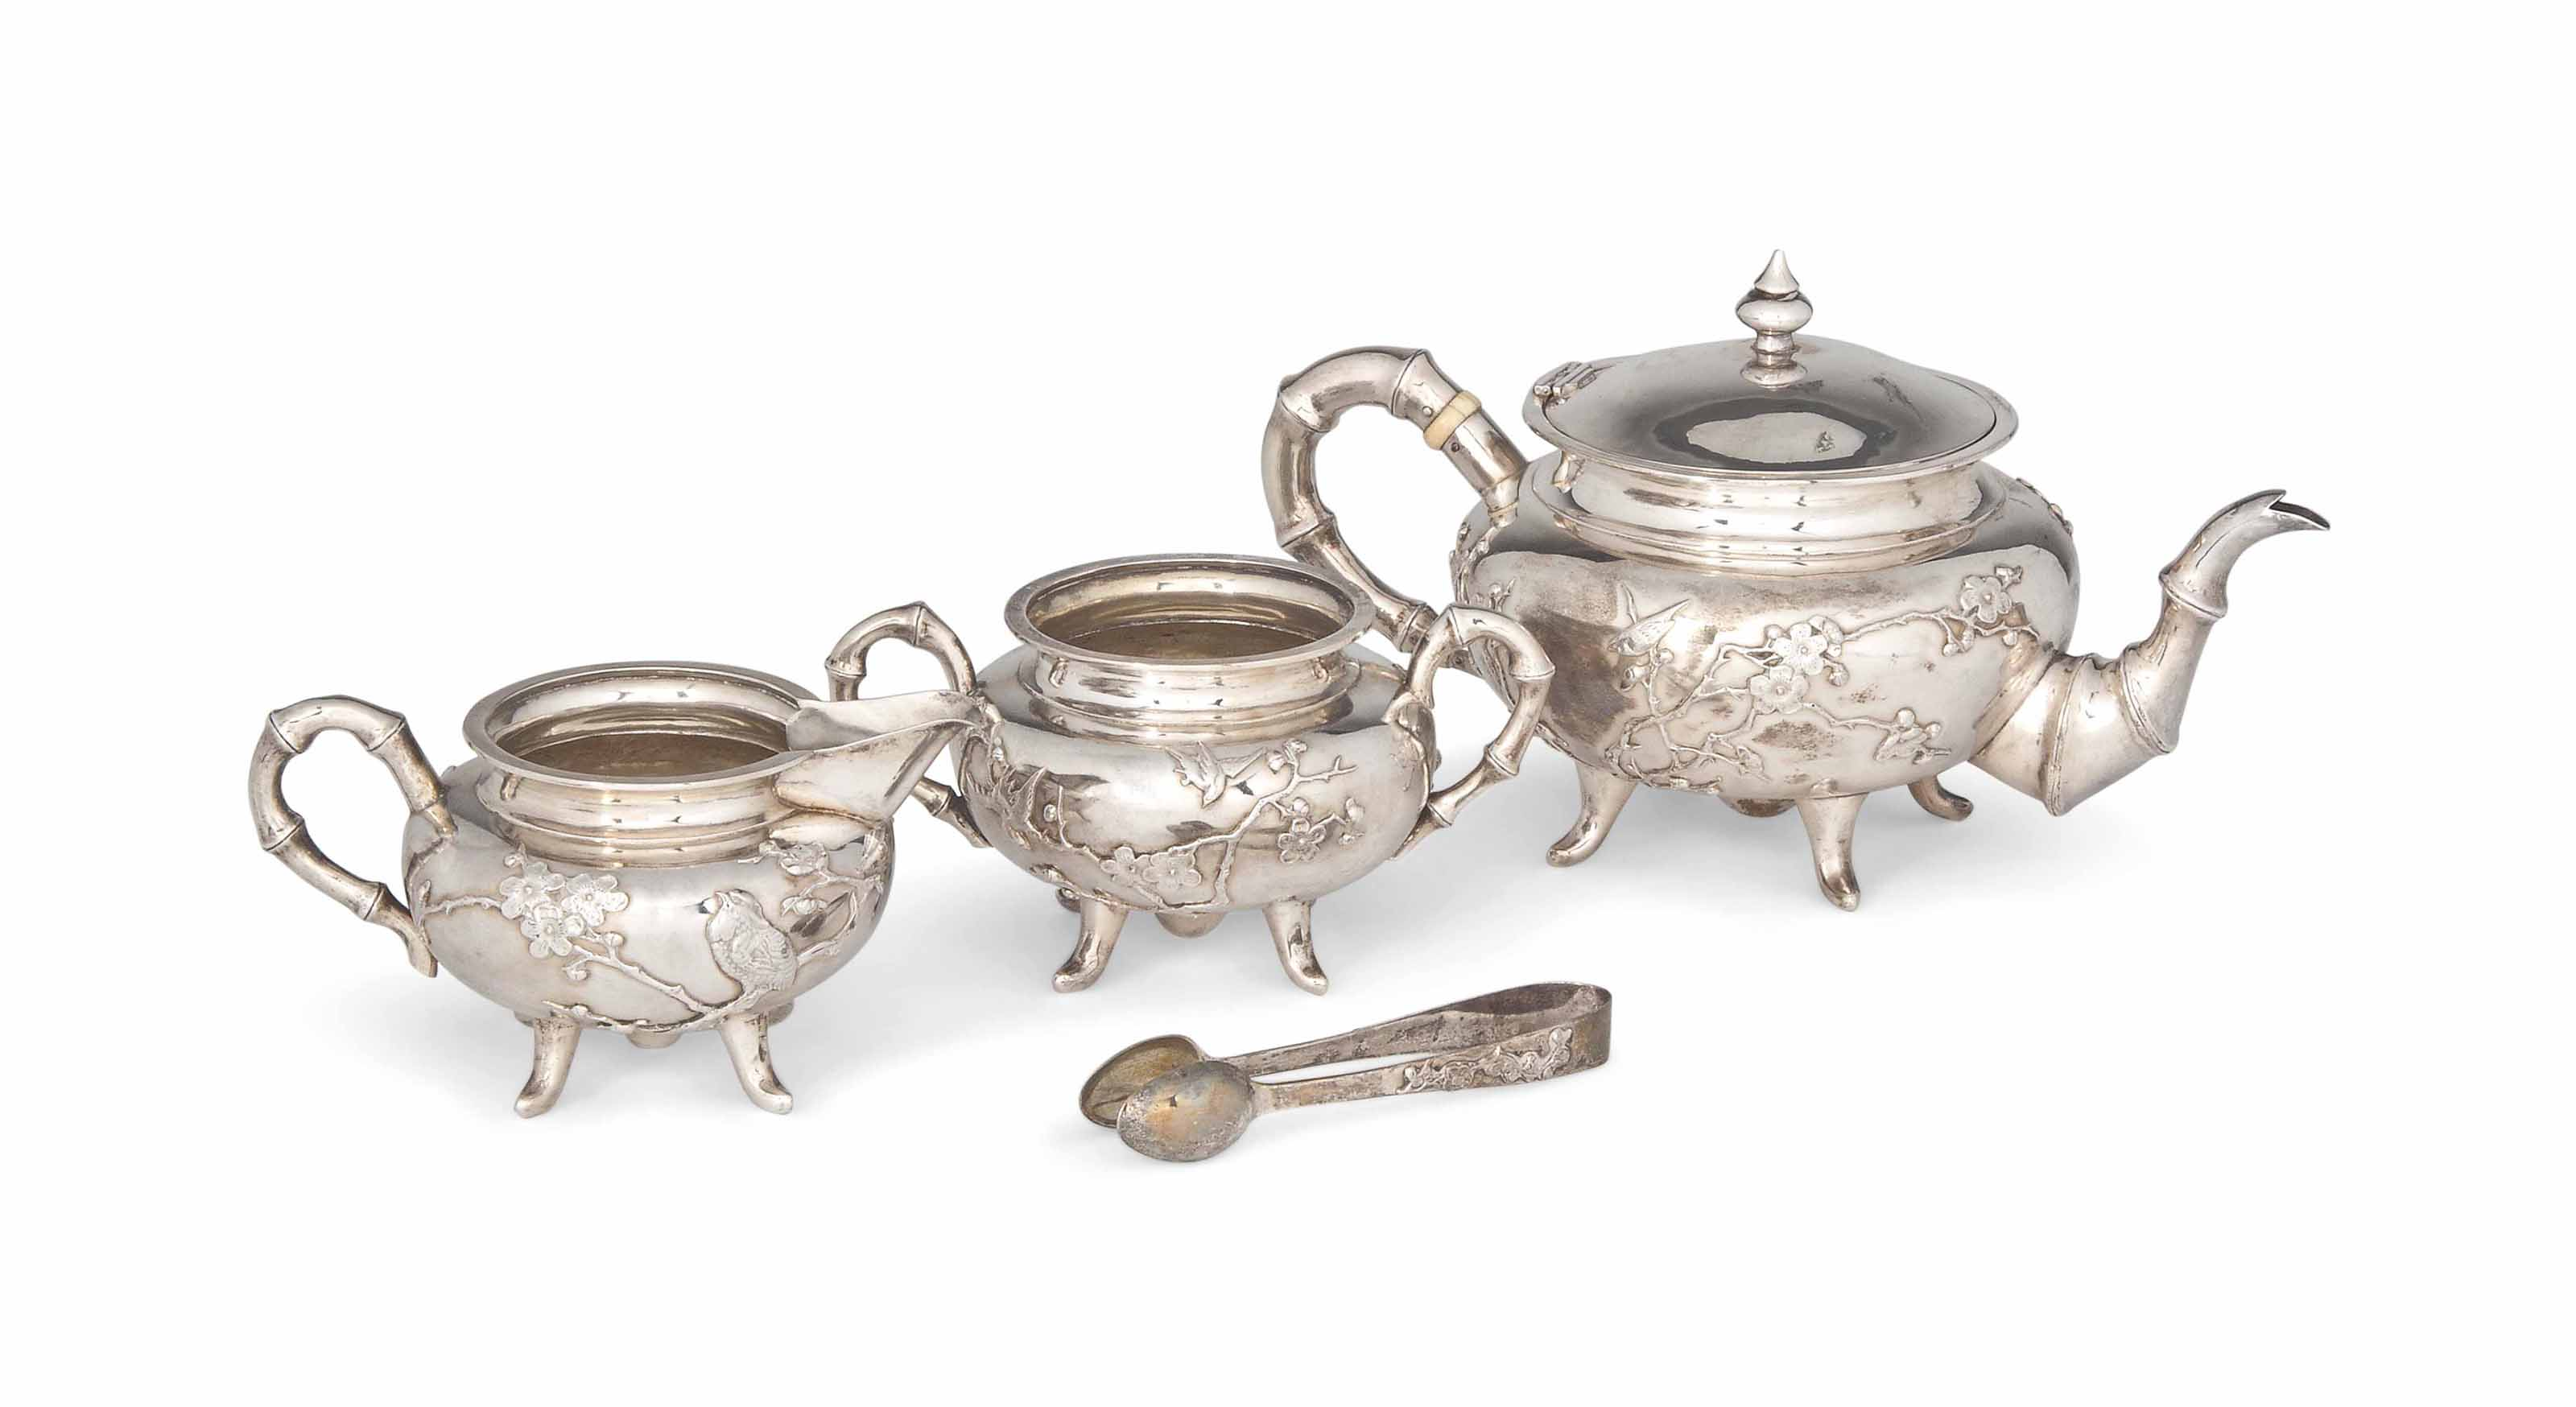 A CHINESE EXPORT SILVER THREE-PIECE TEA SET WITH ACCOMPANYING SUGAR TONGS